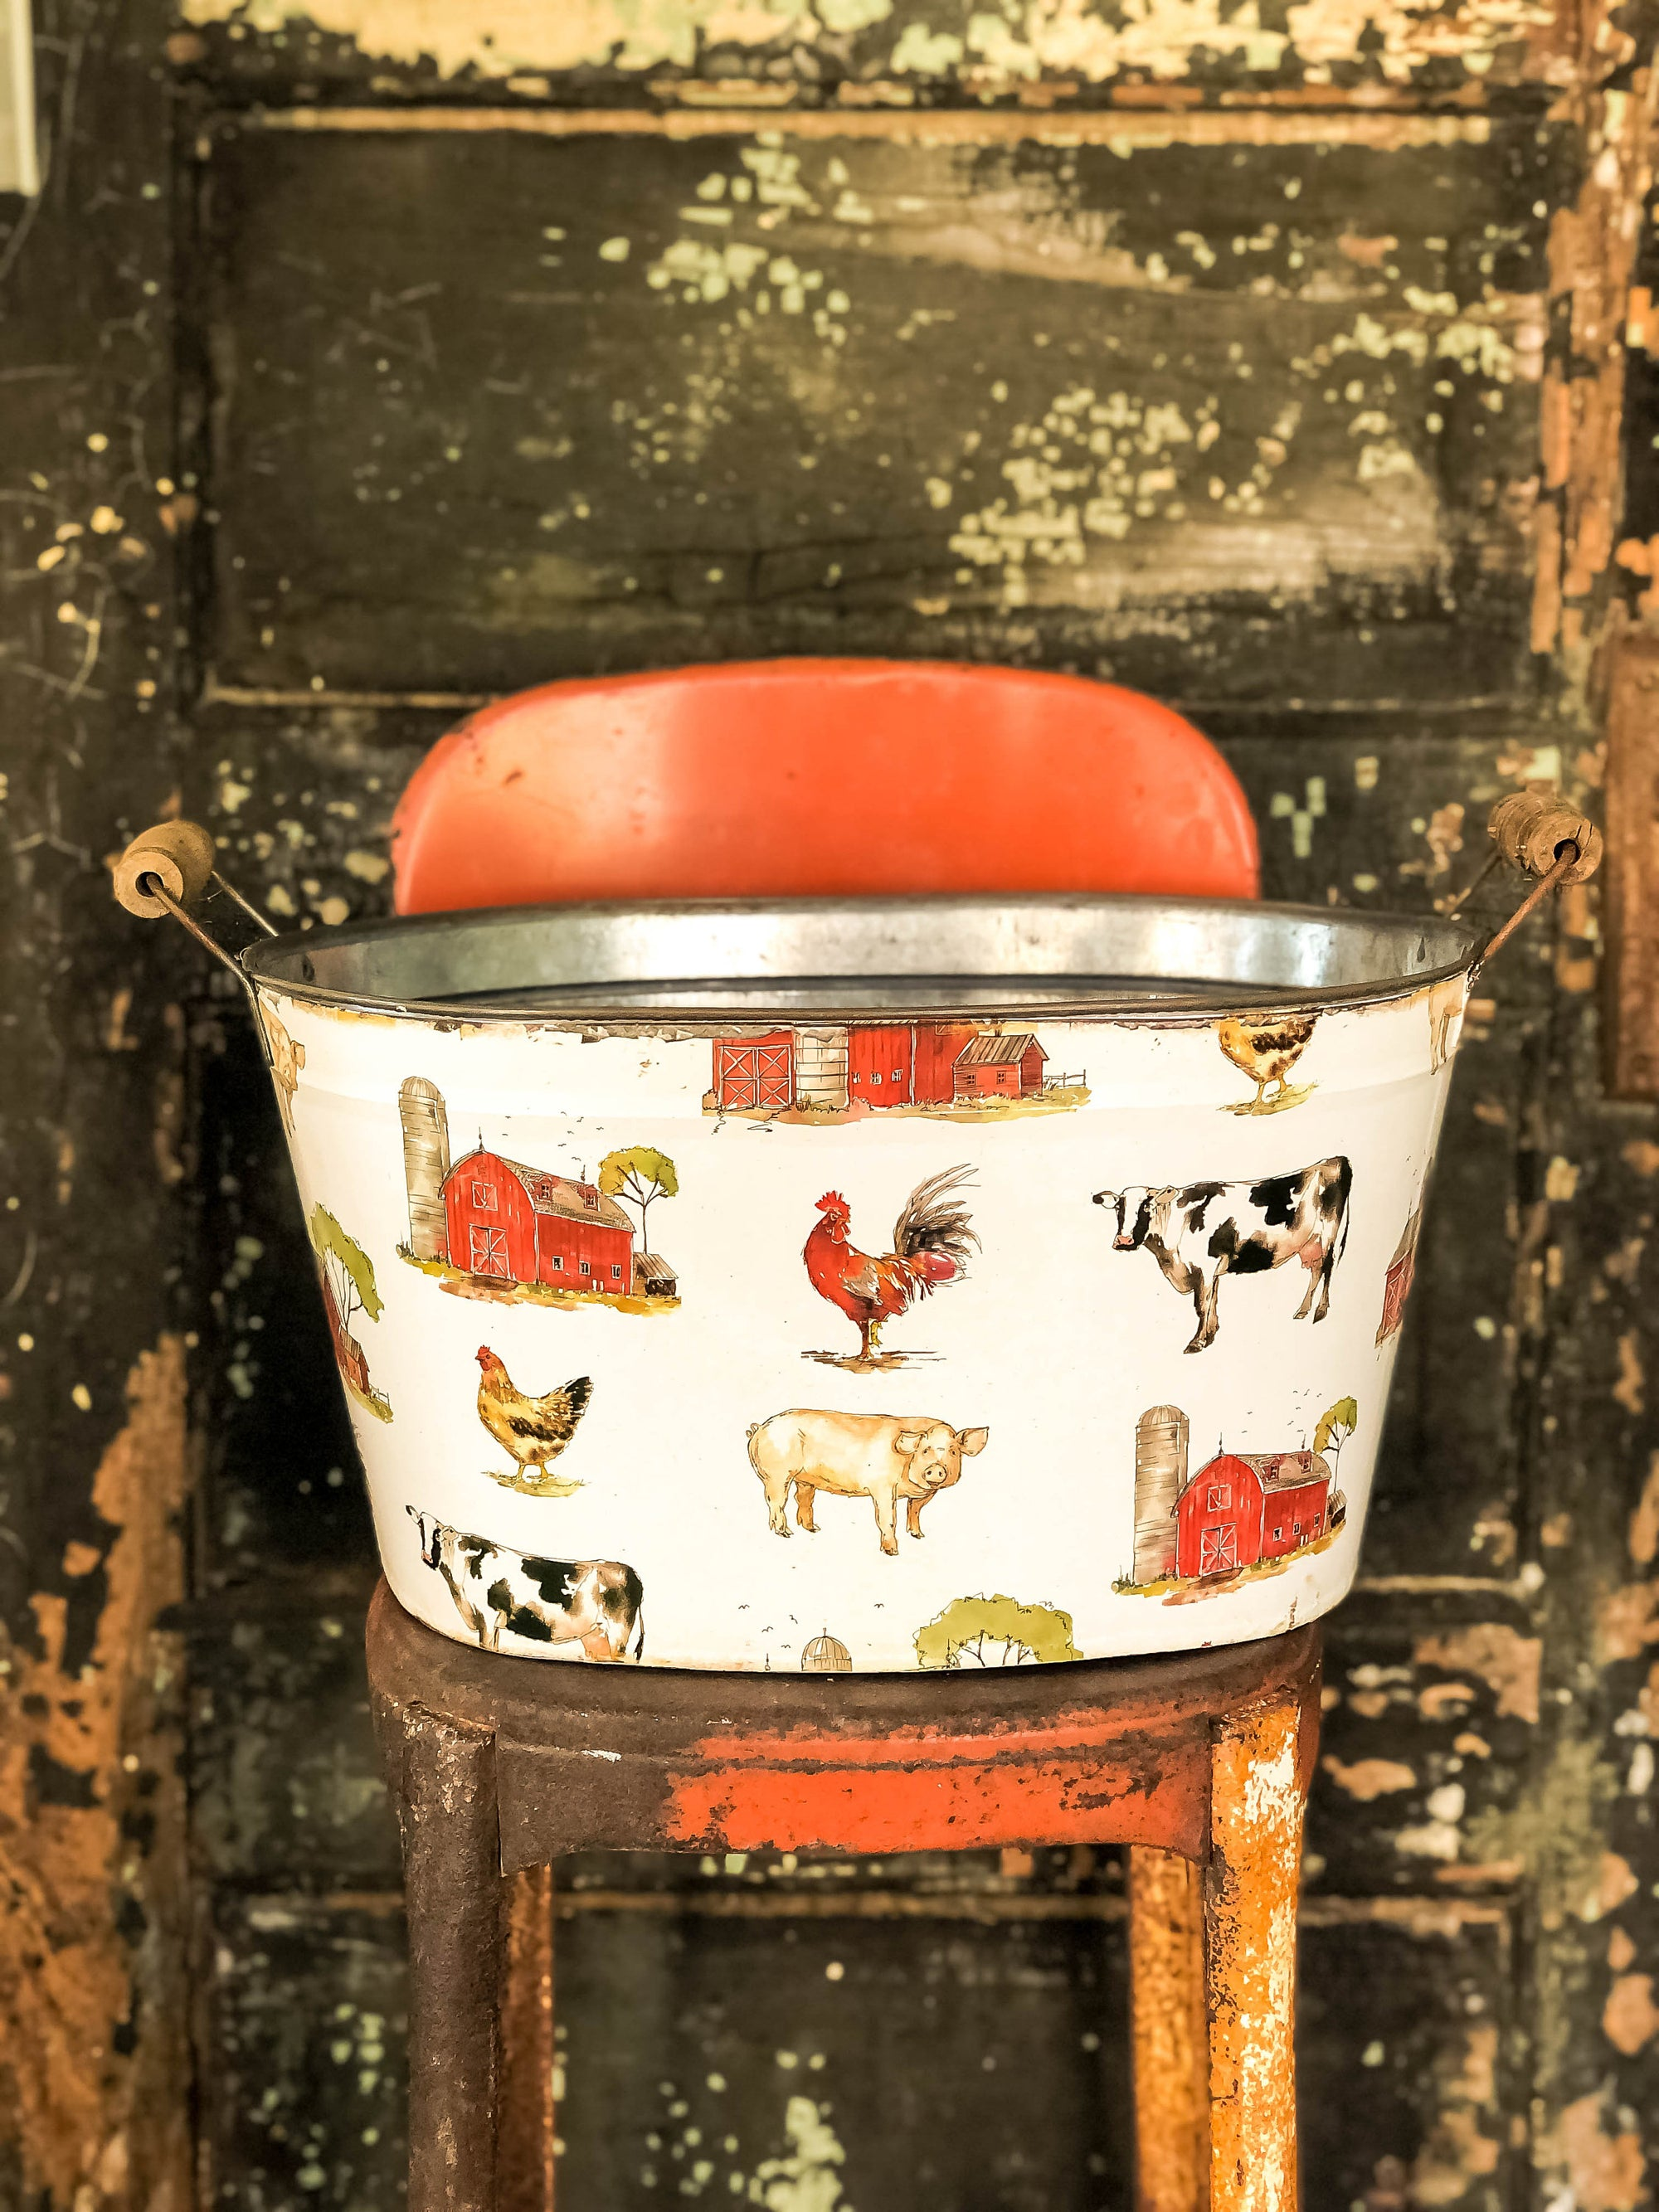 The Annie Vintage Style Farm Animal Print Oval Metal Bucket With Wood Handles~Farmhouse & cabin door home decor~Large rustic tub planter